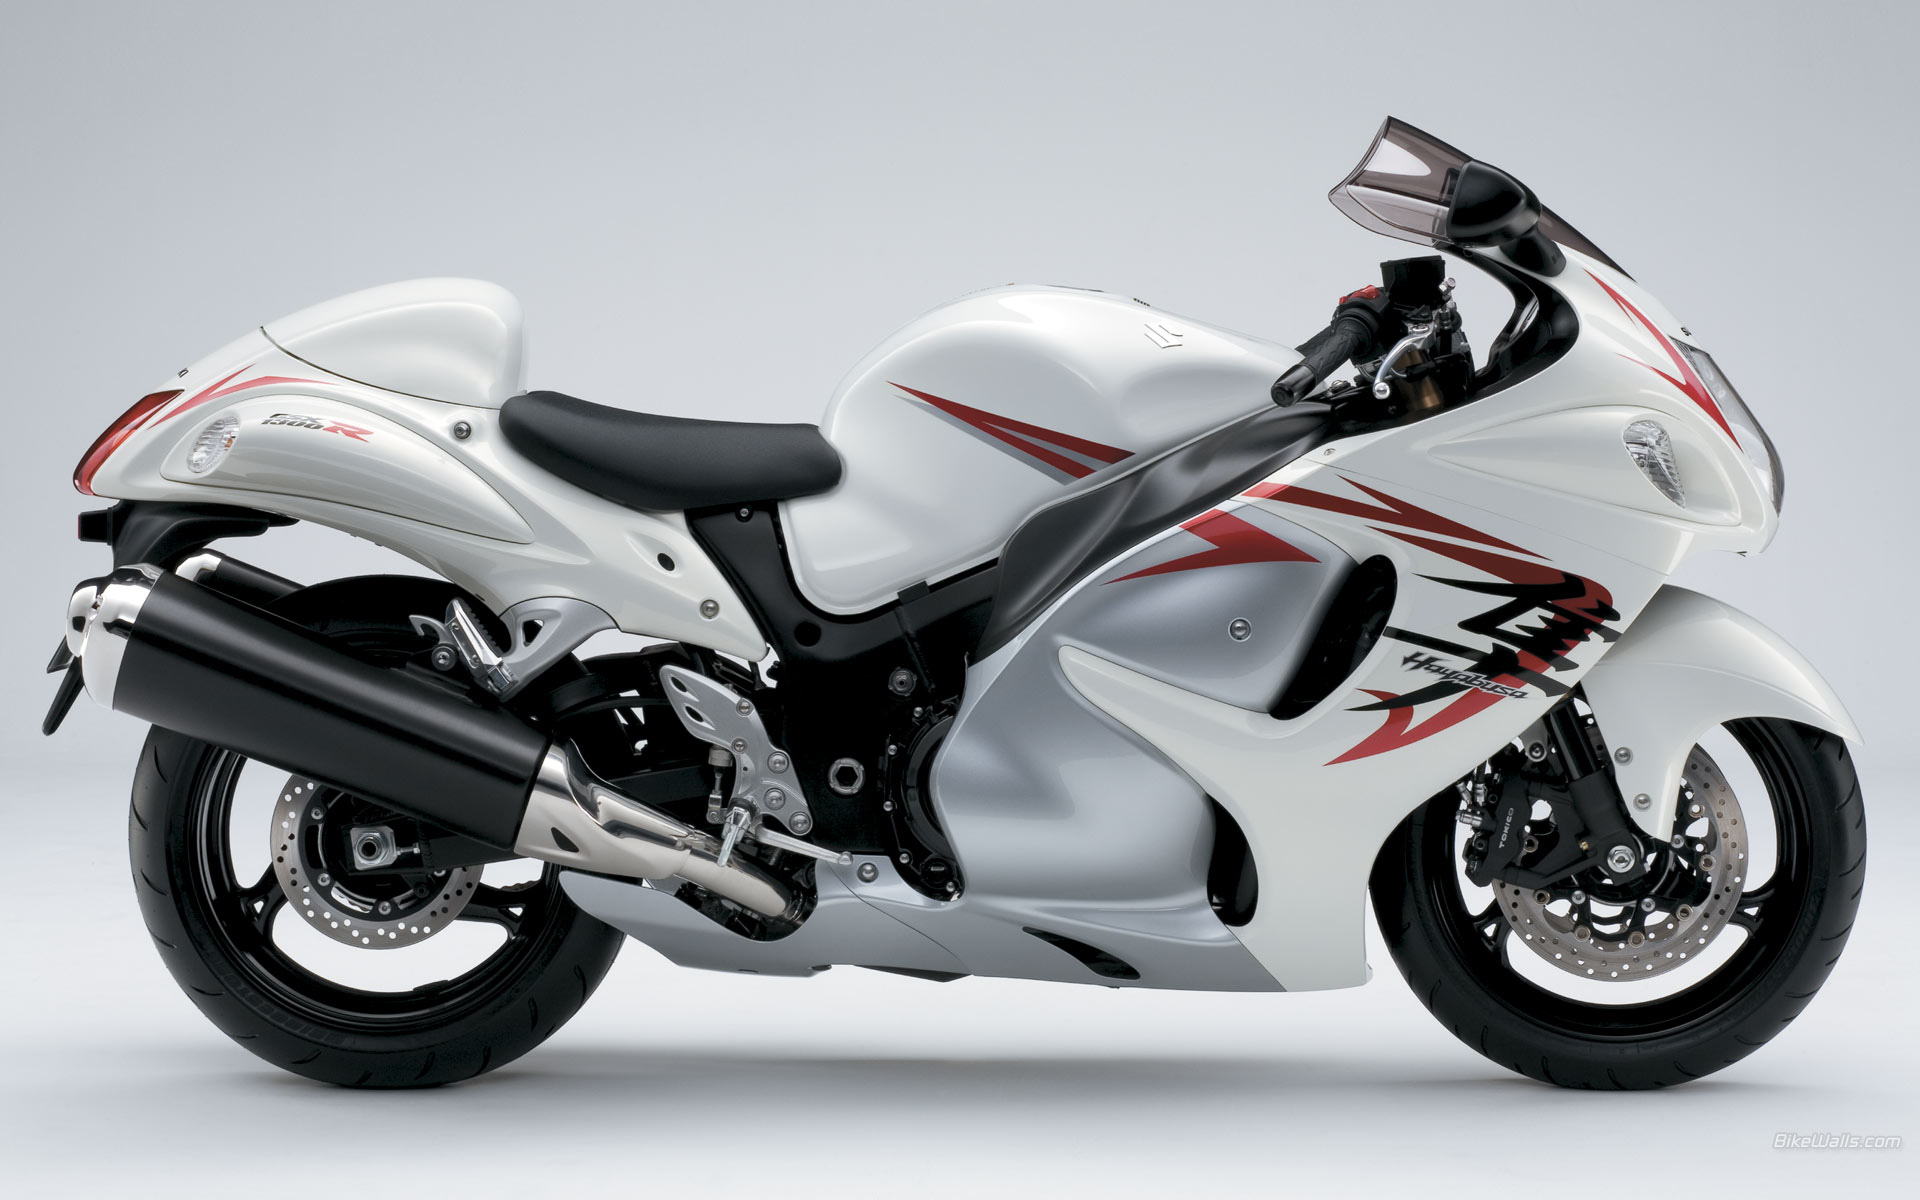 Suzuki Hayabusa 2018 Price in Pakistan, Overview and Pictures